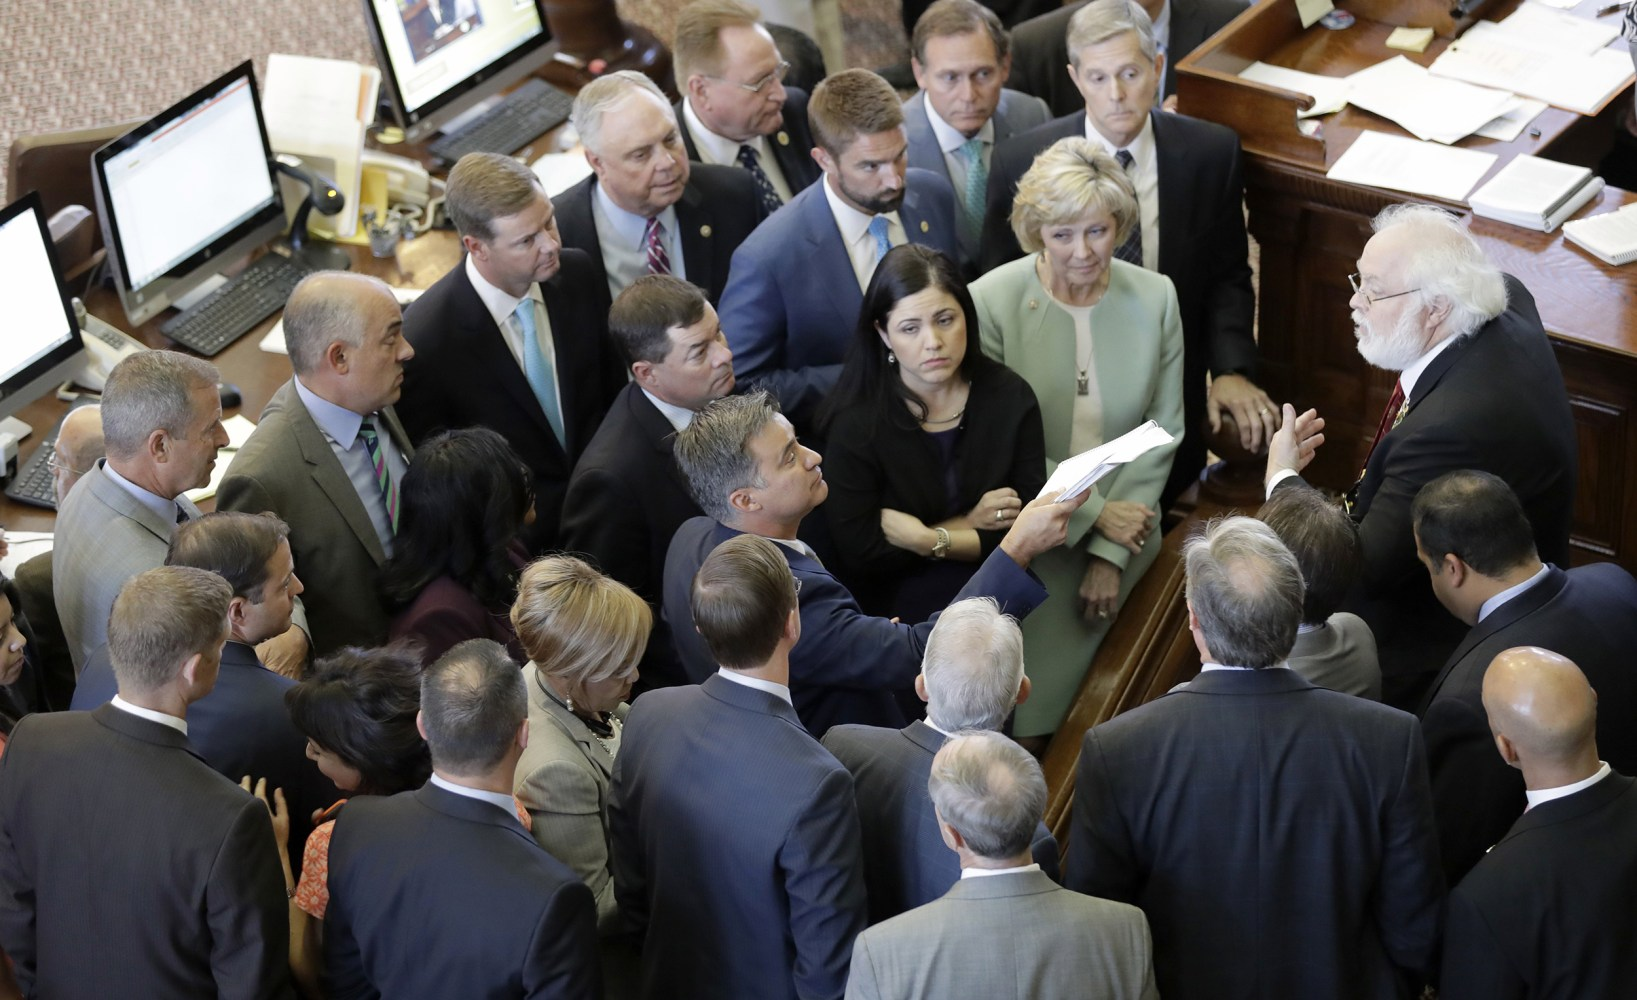 Texas School Finance Reform Effort Fails in Special Session